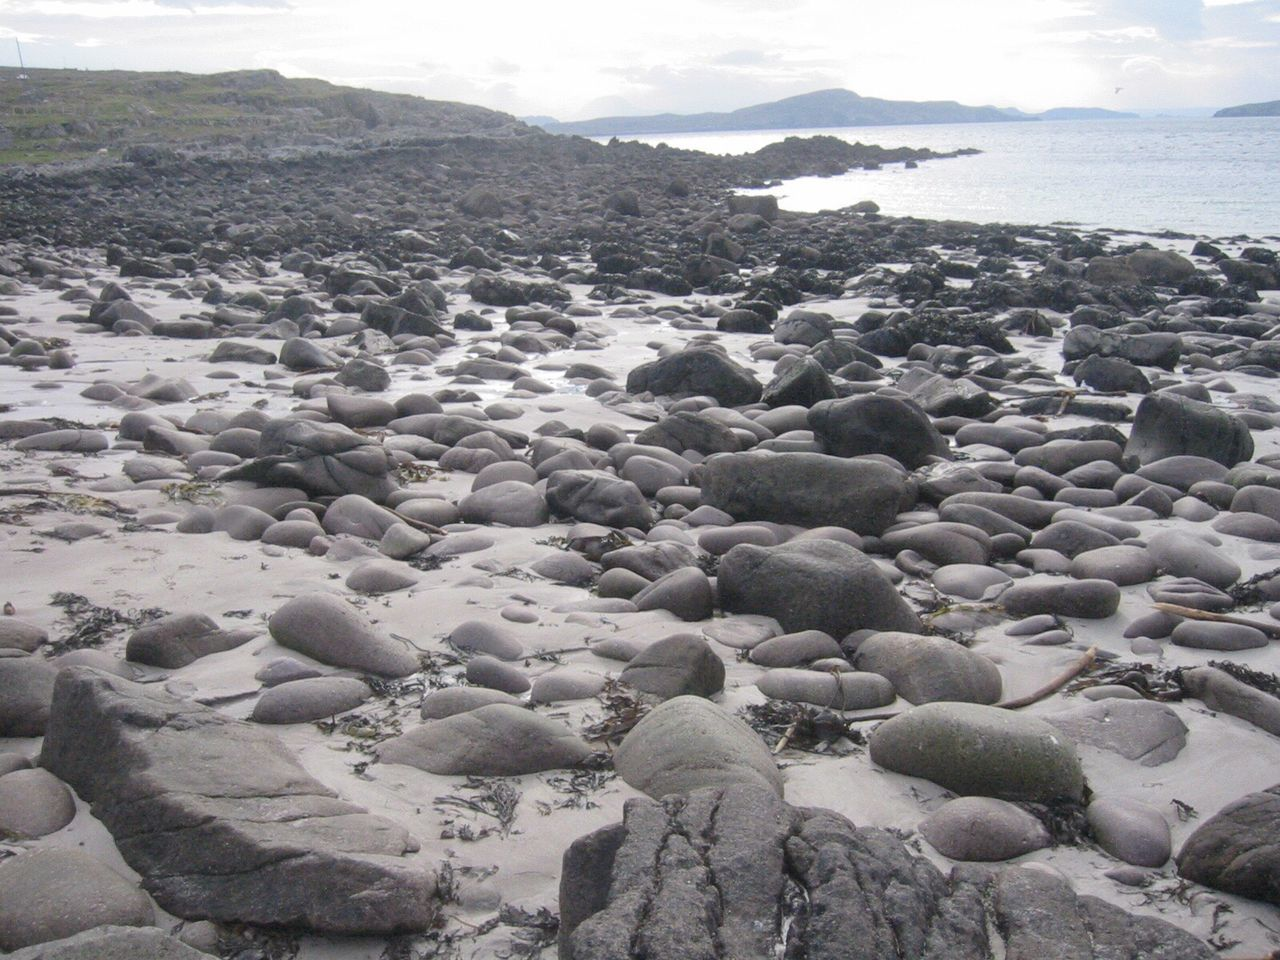 beach, shore, nature, sea, no people, beauty in nature, outdoors, day, pebble beach, tranquility, pebble, water, scenics, sky, close-up